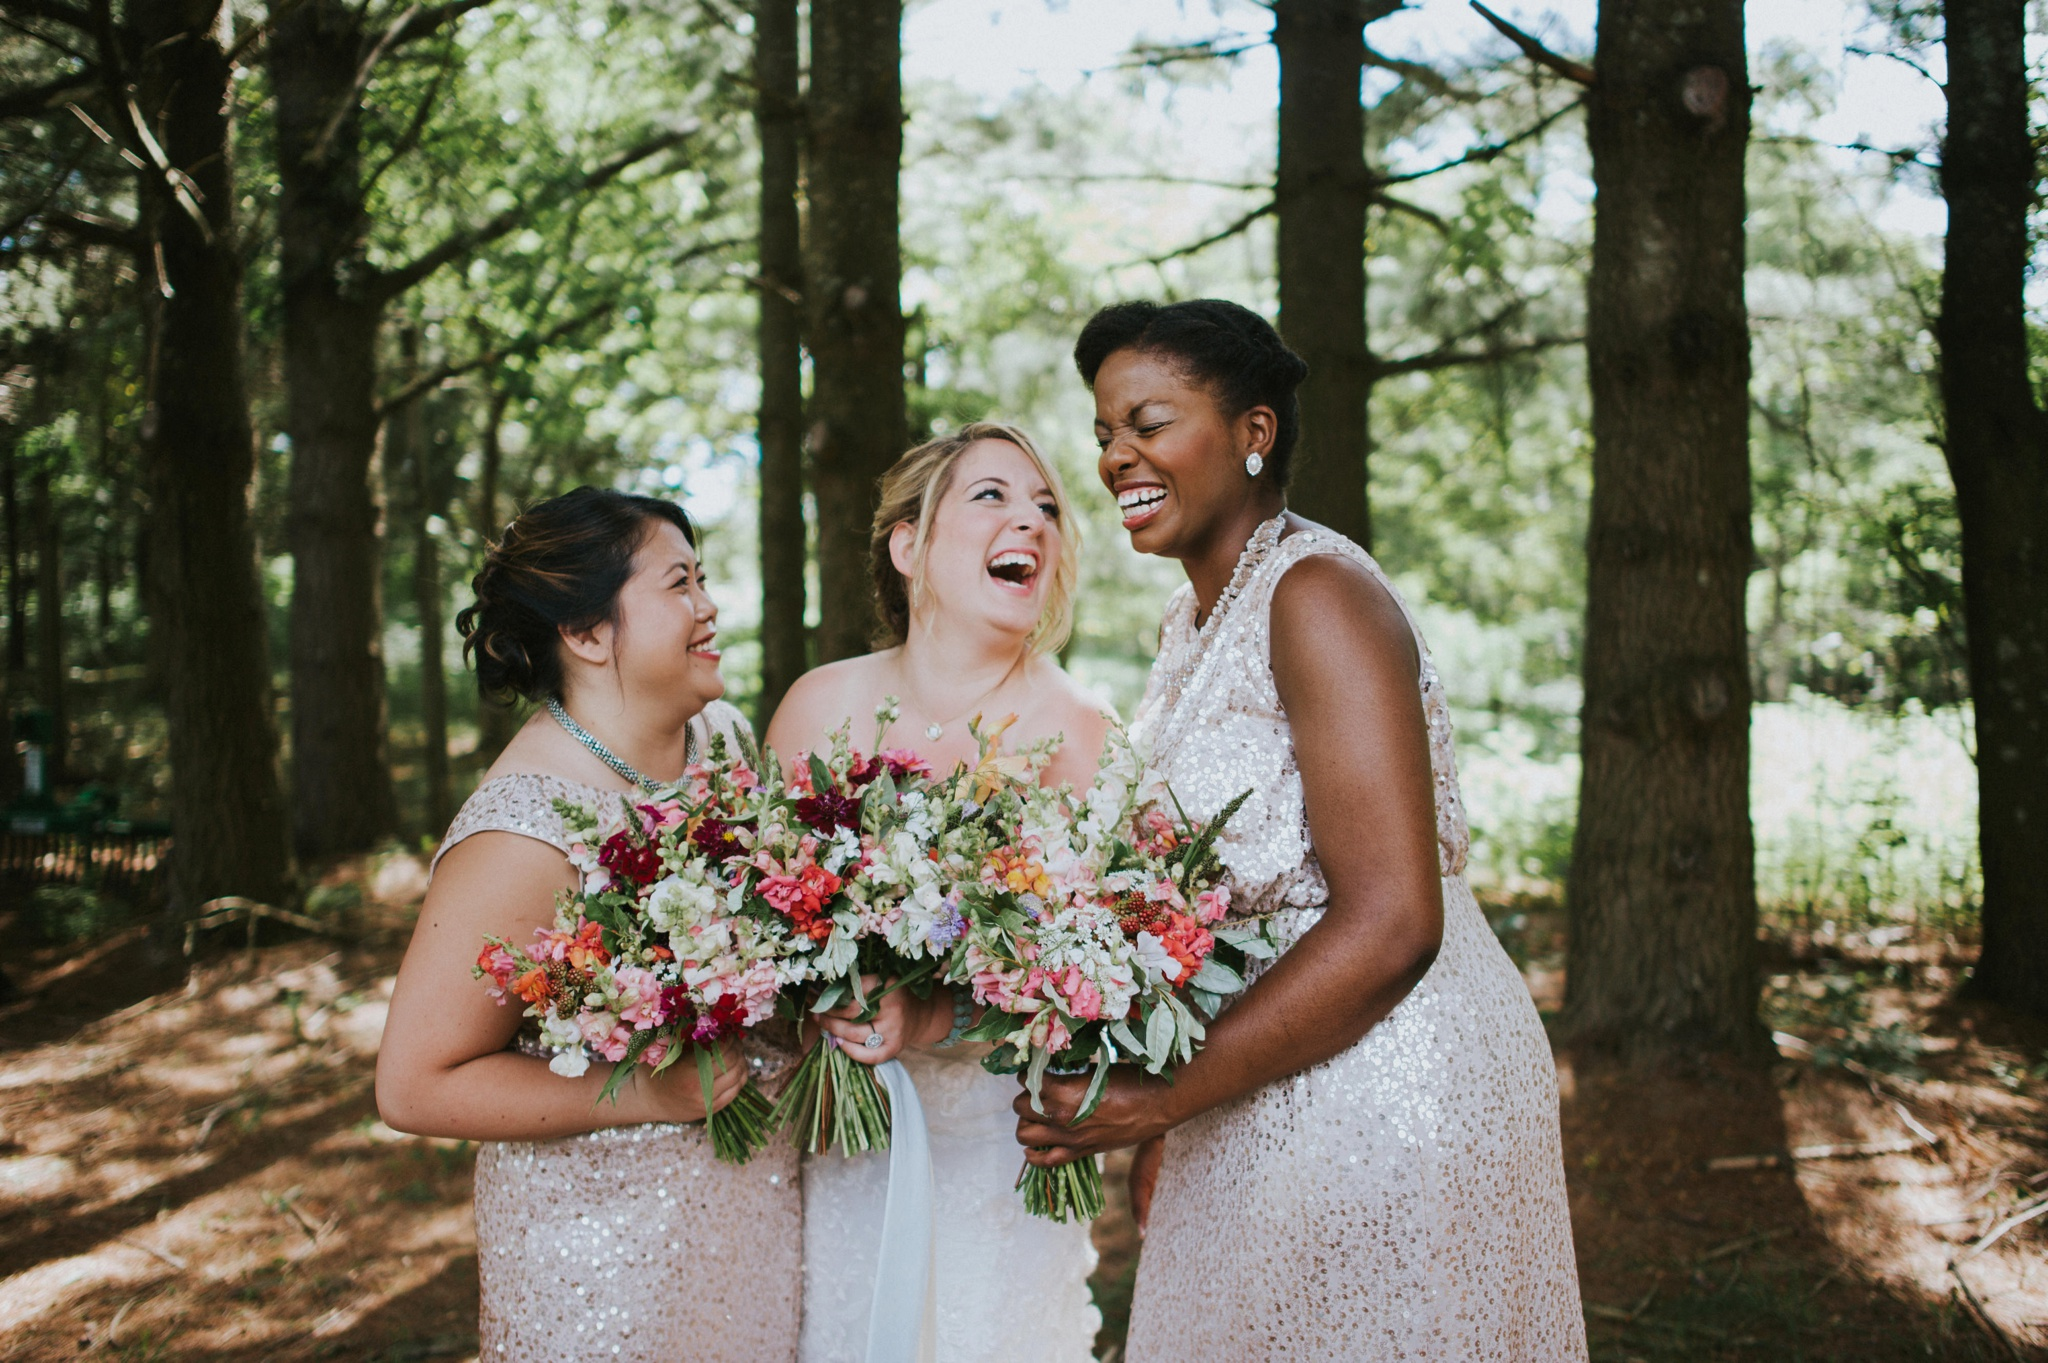 Bridesmaids laughing pose